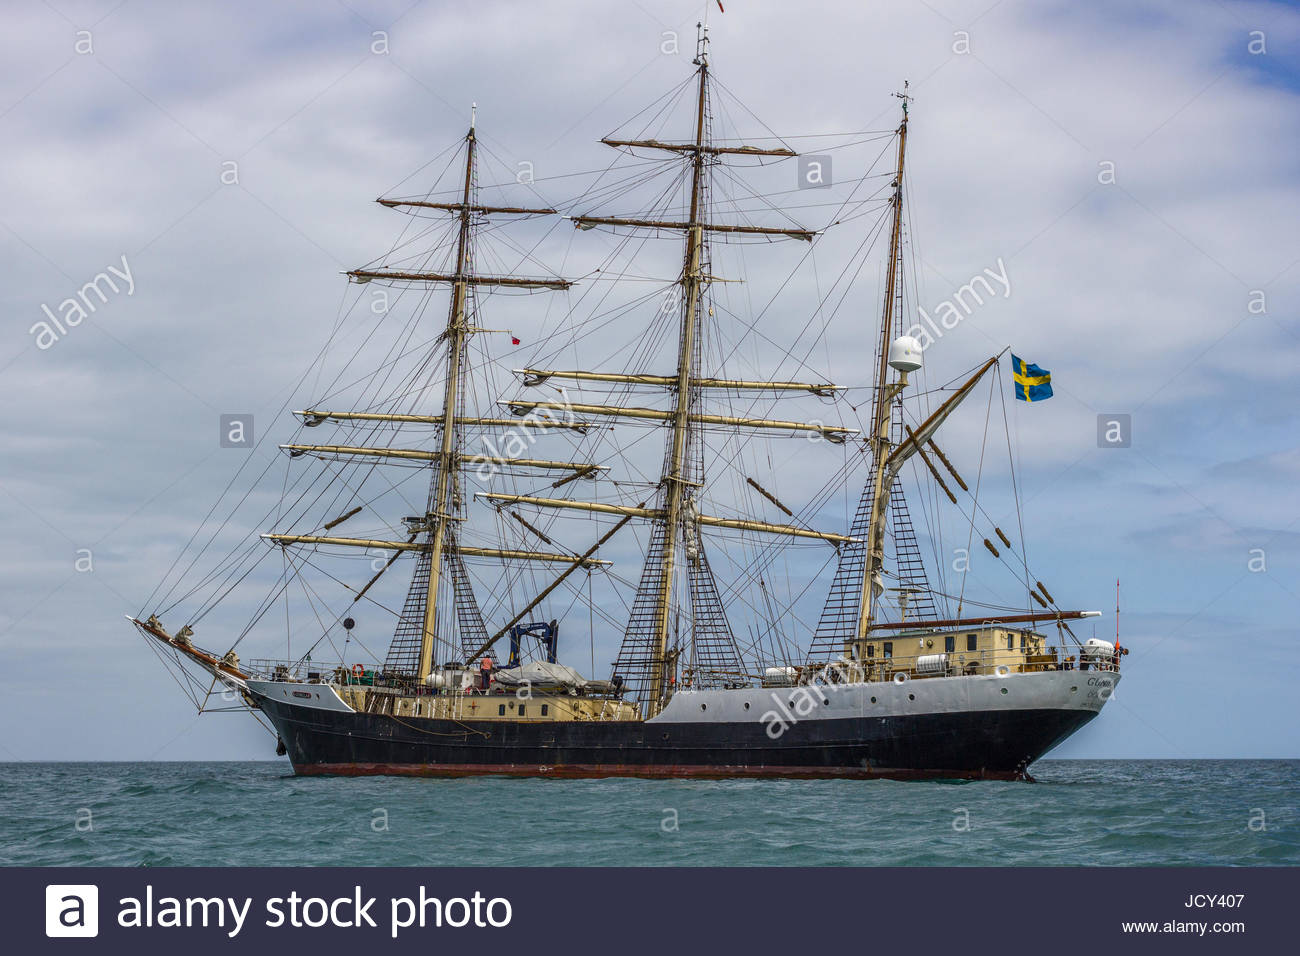 At anchor in the Nab Anchorage off the Isle of Wight, the Swedish training ship TS Gunilla on an annual UK visit. - Stock Image